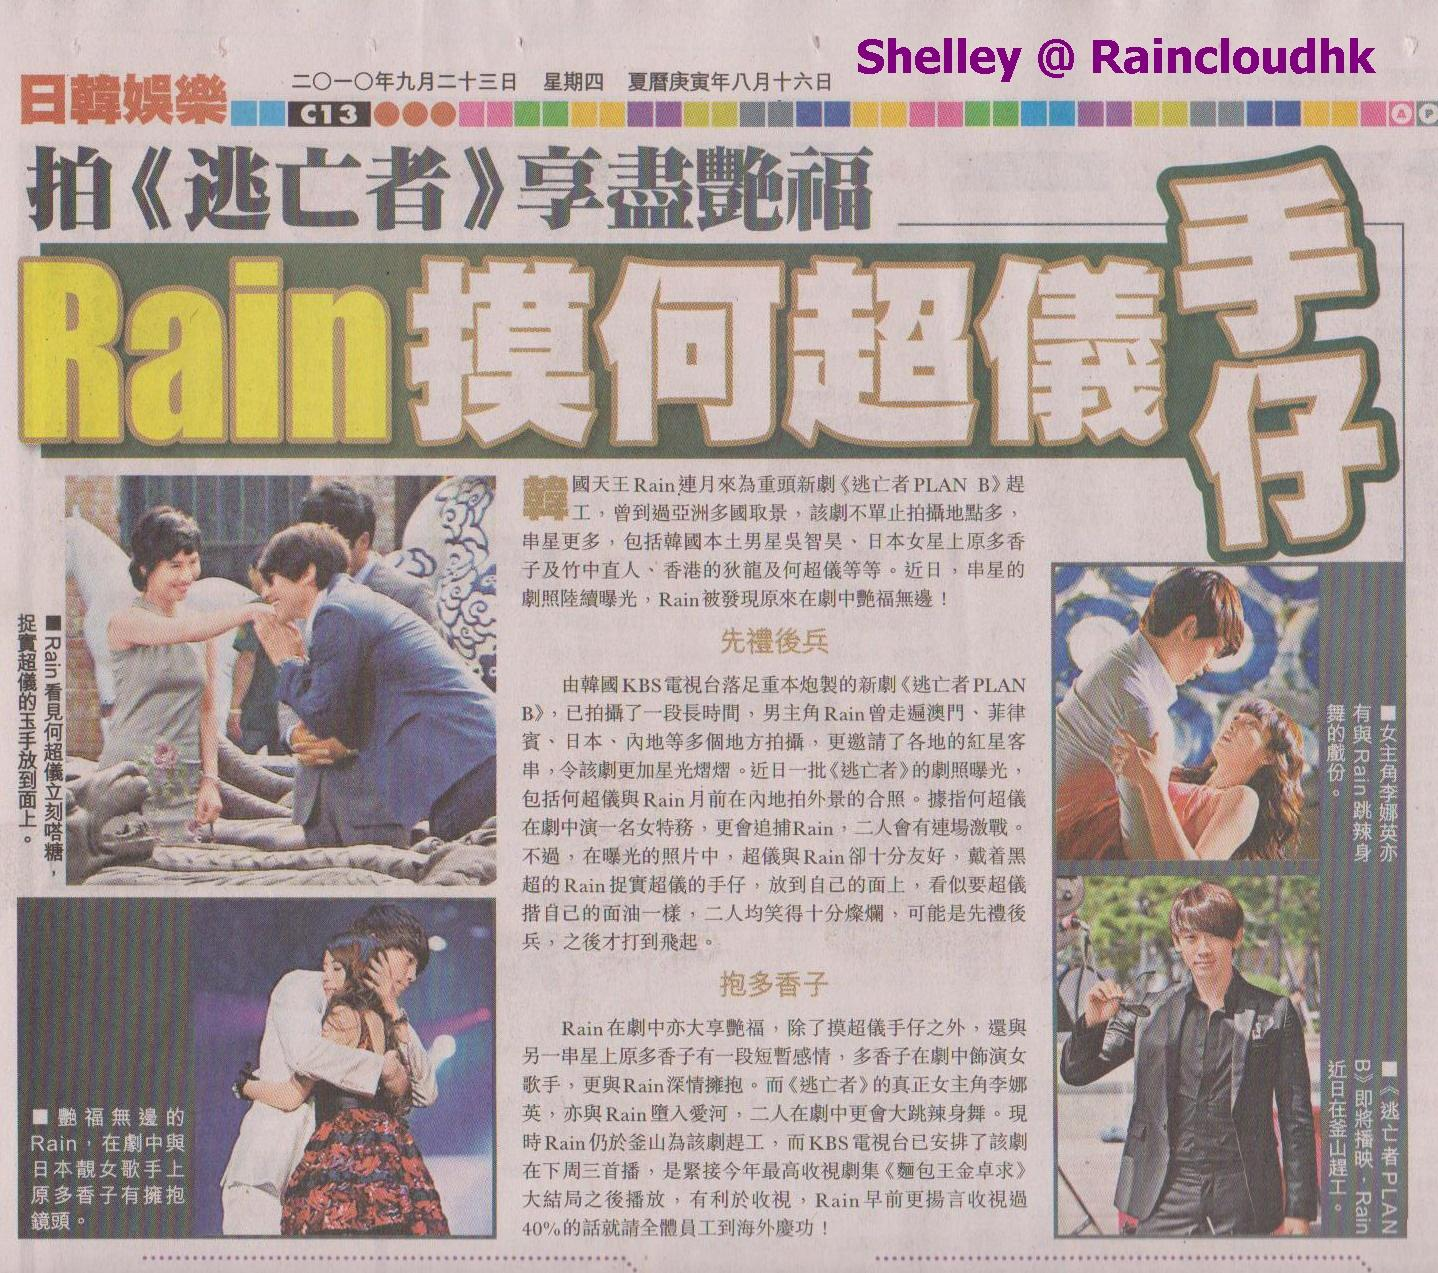 Daily Apple Newspaper http://runaway-fugitive.blogspot.com/2010/09/10-09-23-rain-bi-apple-daily-newspaper.html